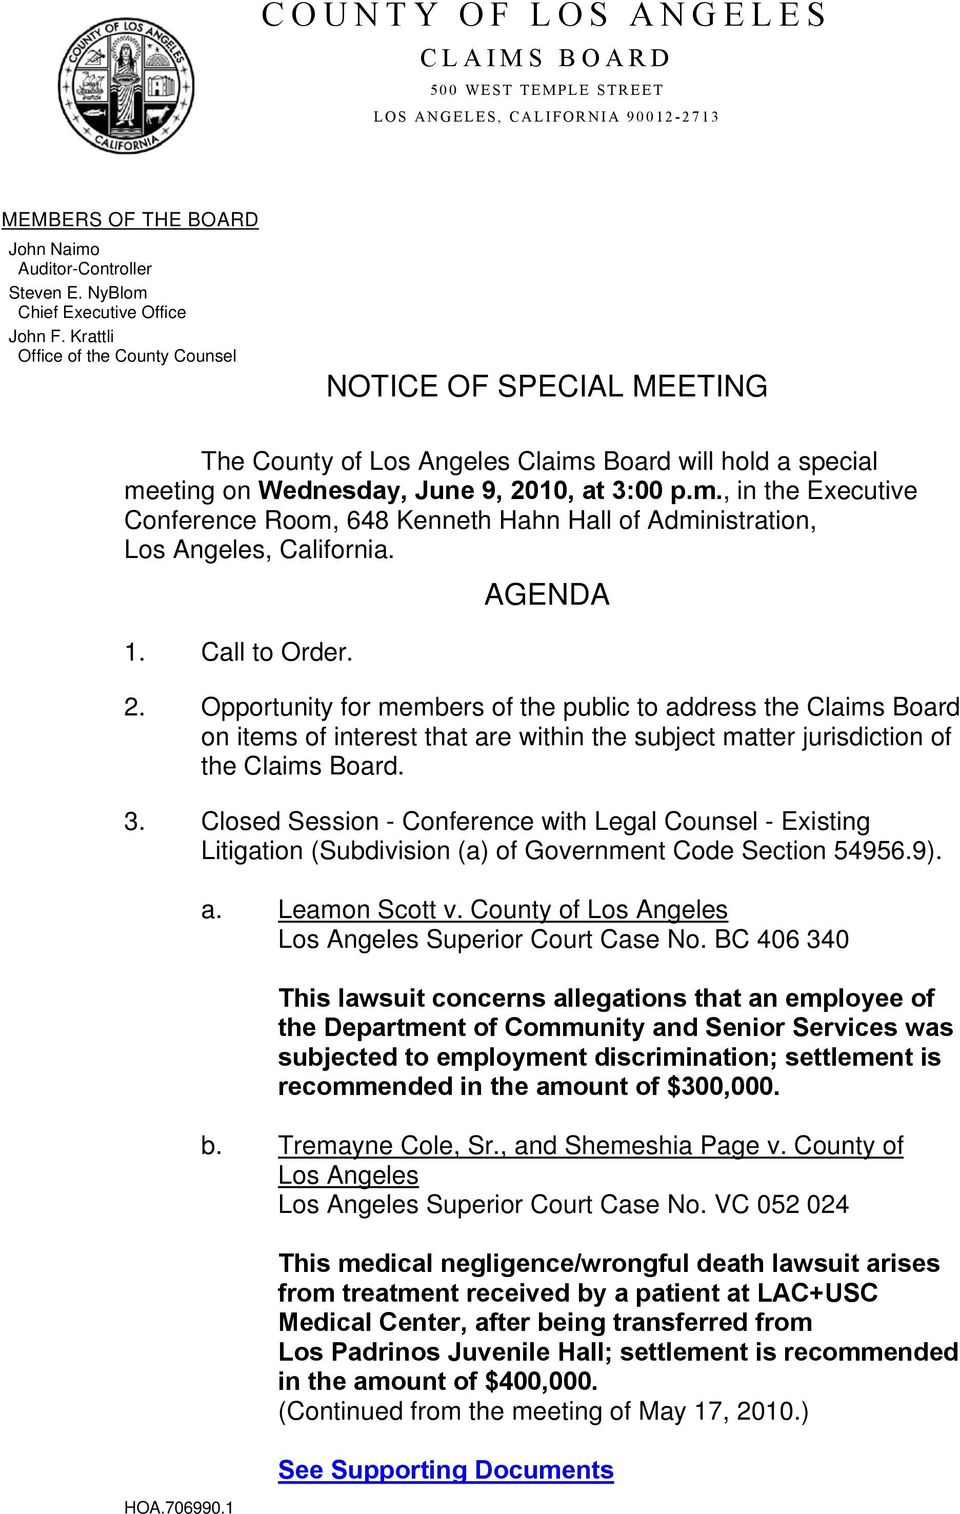 AGENDA 1. Call to Order. 2. Opportunity for members of the public to address the Claims Board on items of interest that are within the subject matter jurisdiction of the Claims Board. 3.